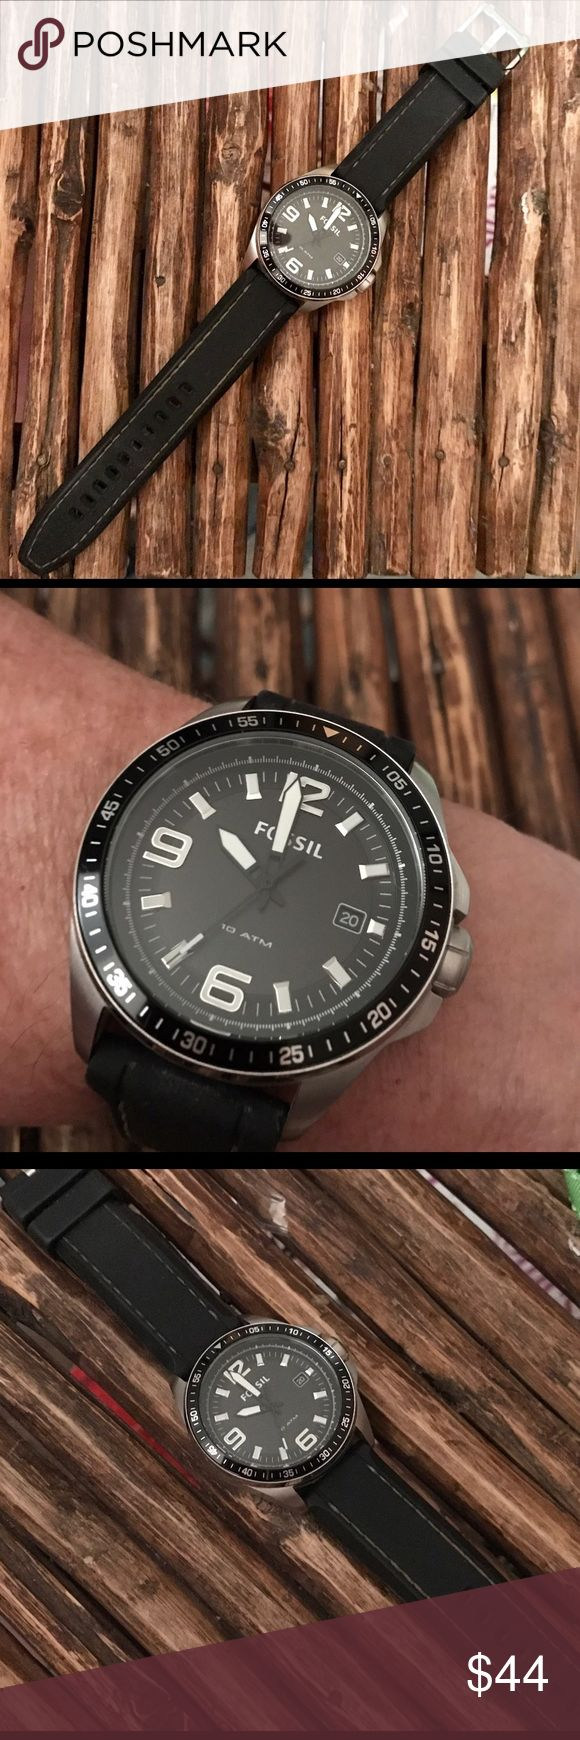 Men's Fossil Watch Black rubber/silicone band with stainless case. Watch face is black with white numbers & hands. EUC! Very minimal scratches on the back and sides of the case from normal wear. NO scratches on the crystal. Needs new battery. Fossil Accessories Watches